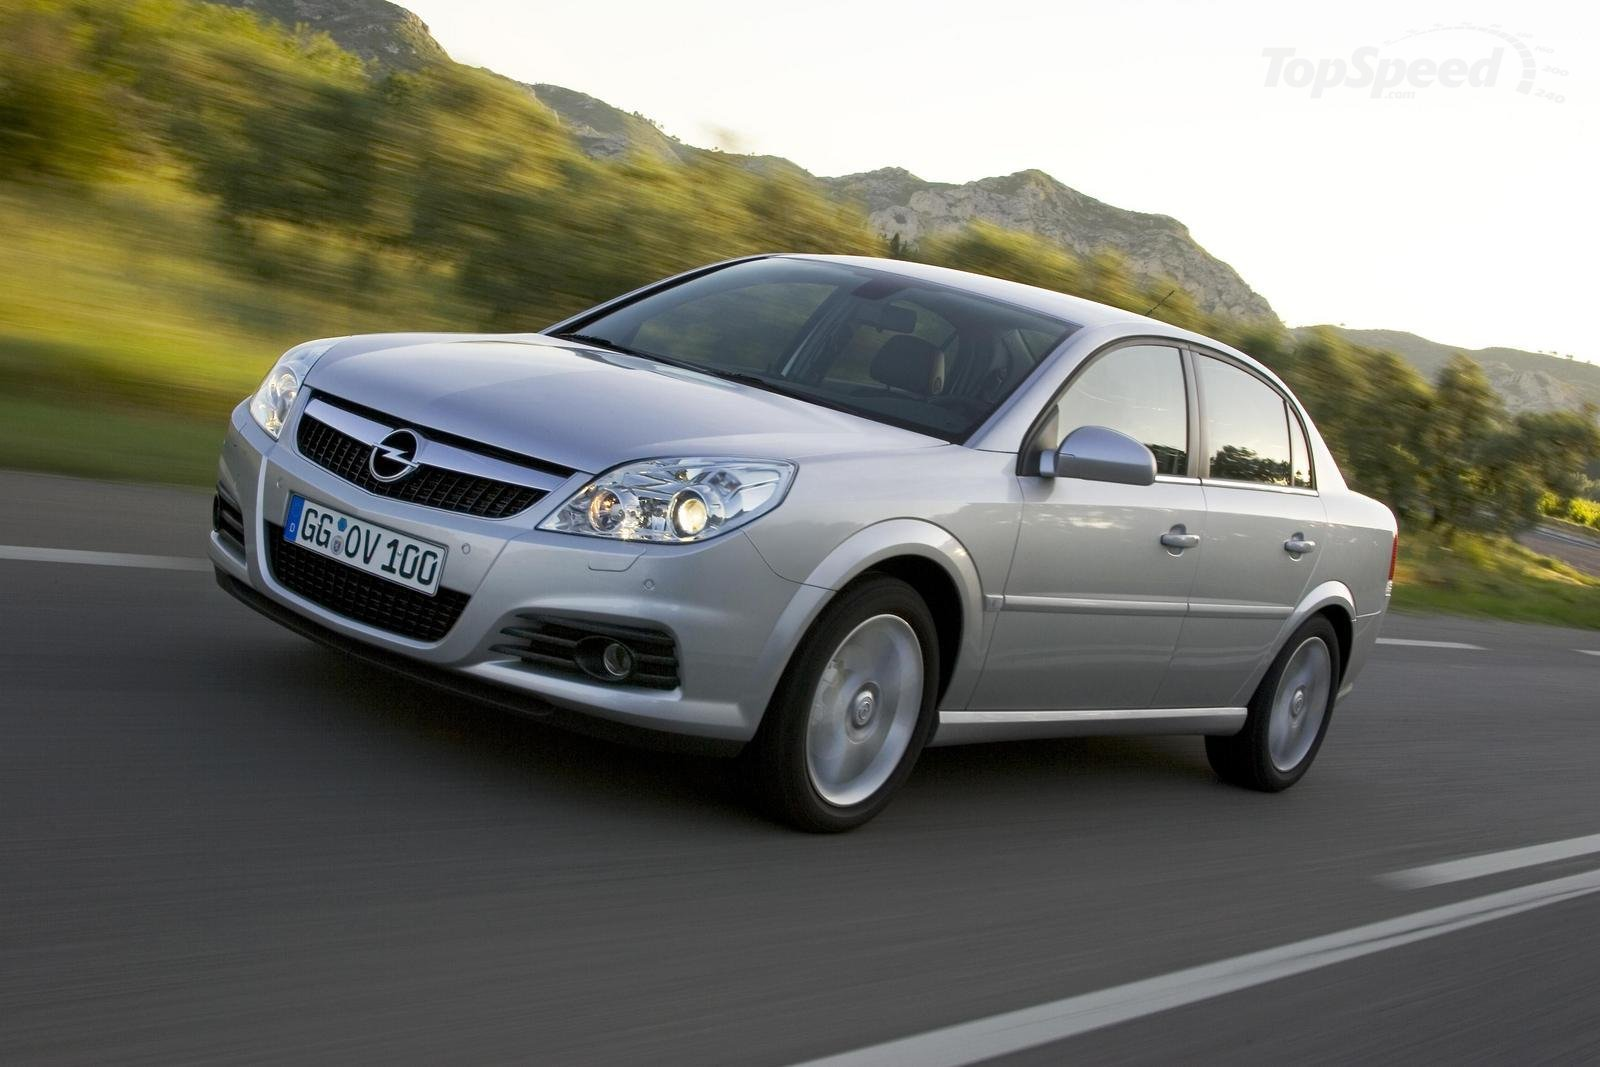 OPEL has Vectra developed over models Wallpaper Backgrounds